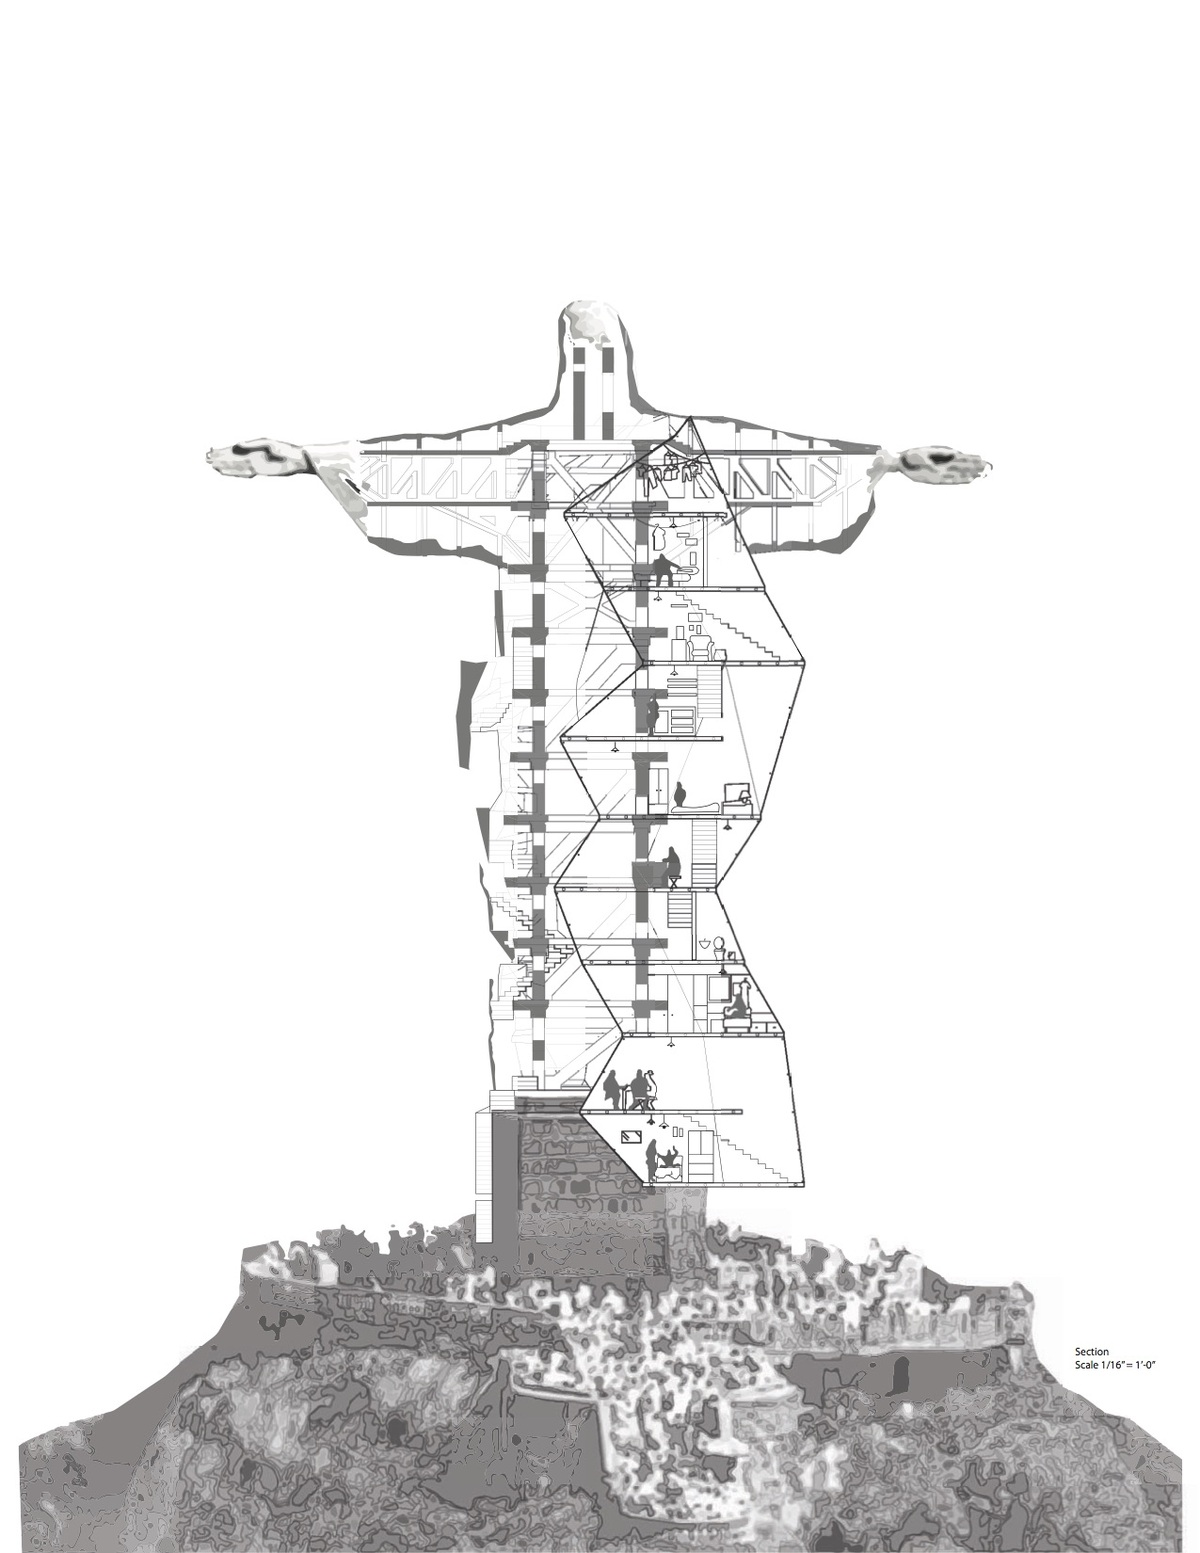 The reconfigured monumentality of Rio de Janeiros Christ, The Redeemer statue highlights the reality of slum tourism in Daniela Martinez-Hernandezs project for the Frank Clementi Studio.